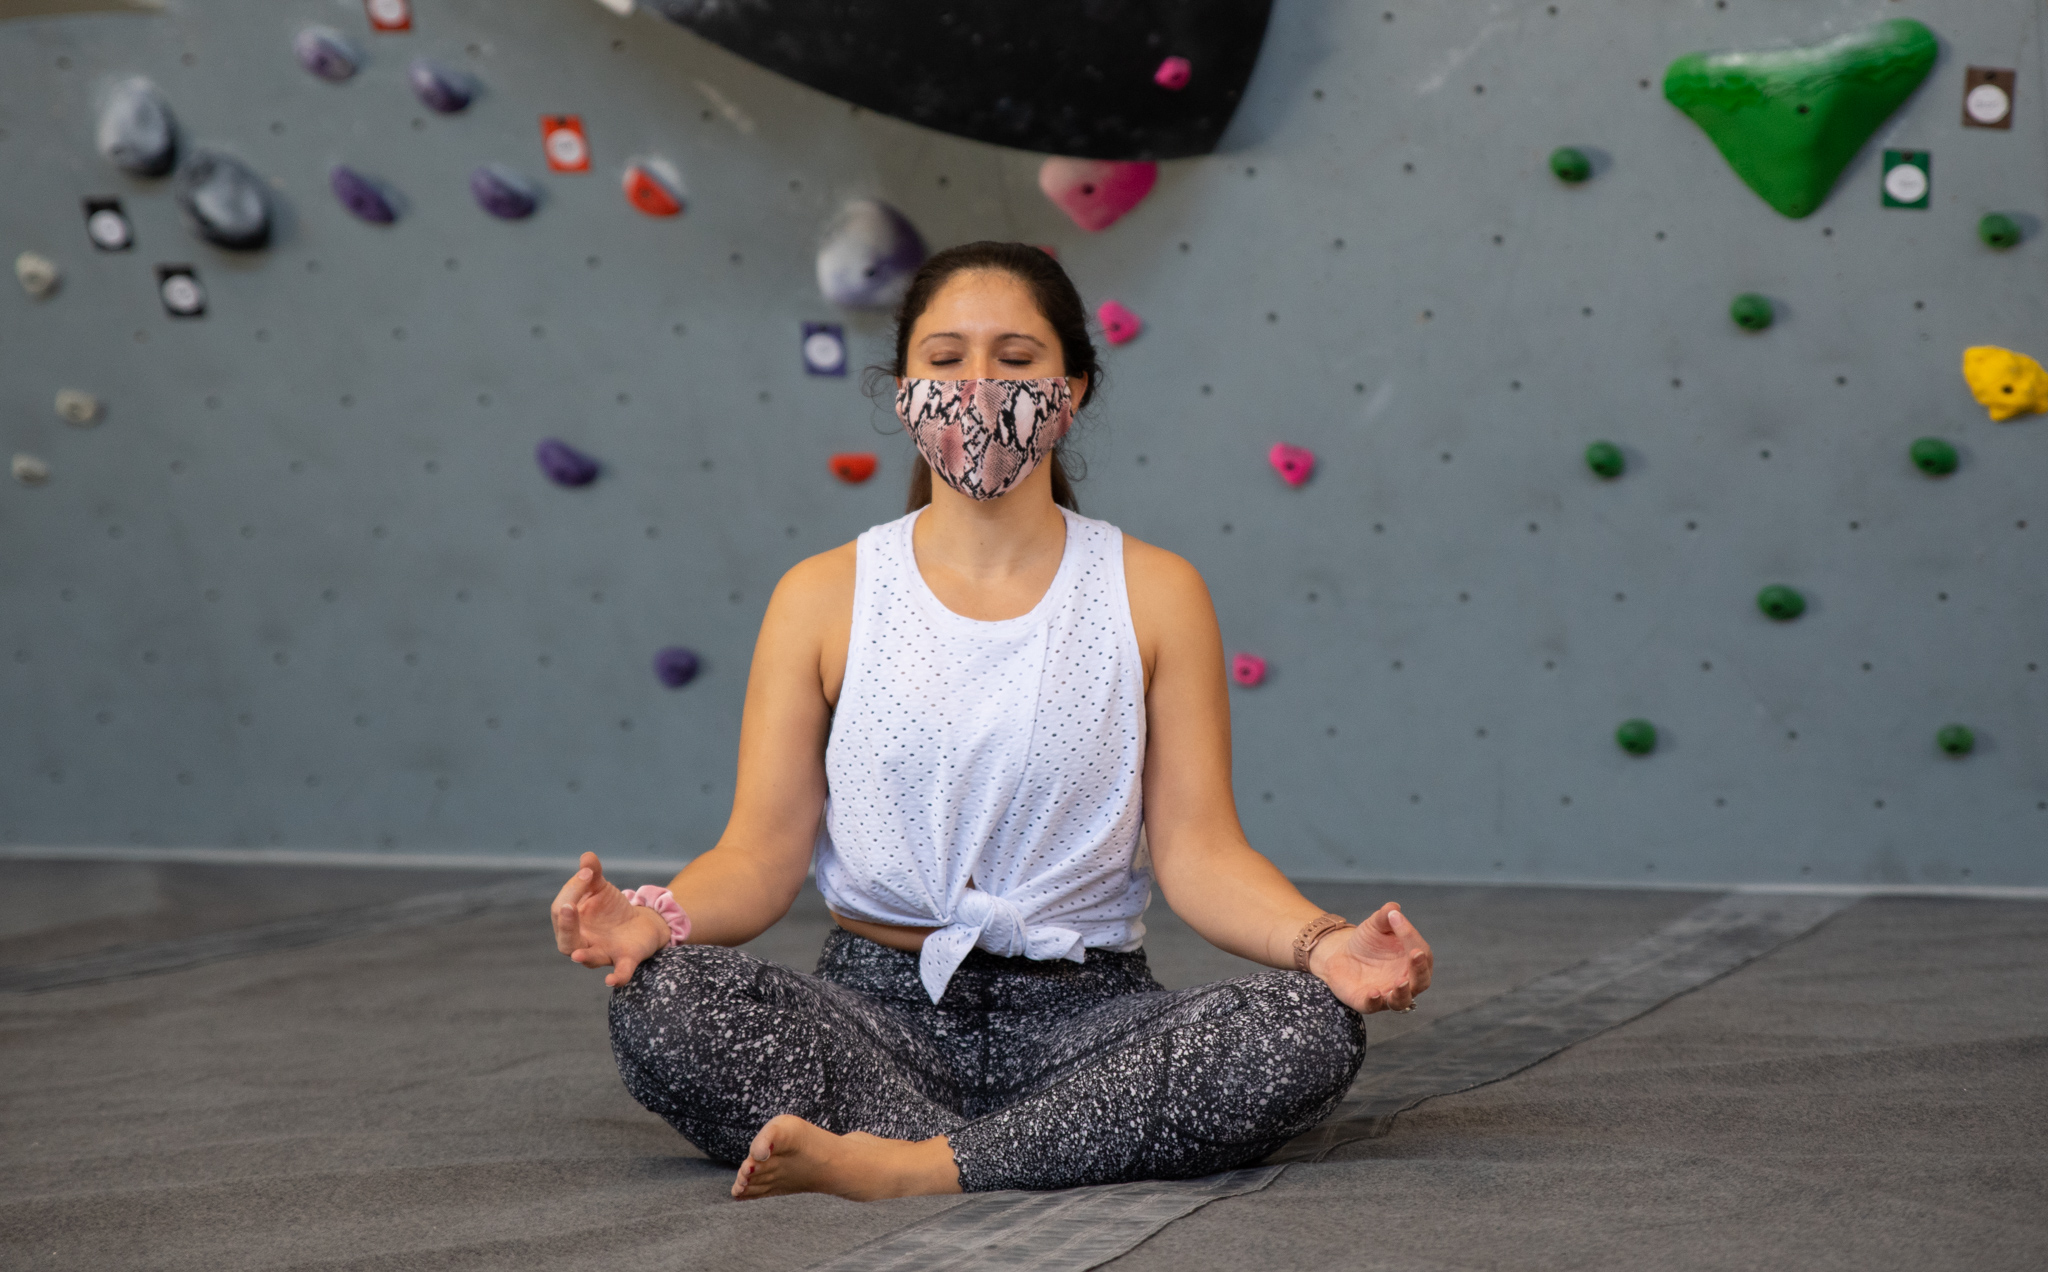 Yoga instructor martha in front of the climbing wall.